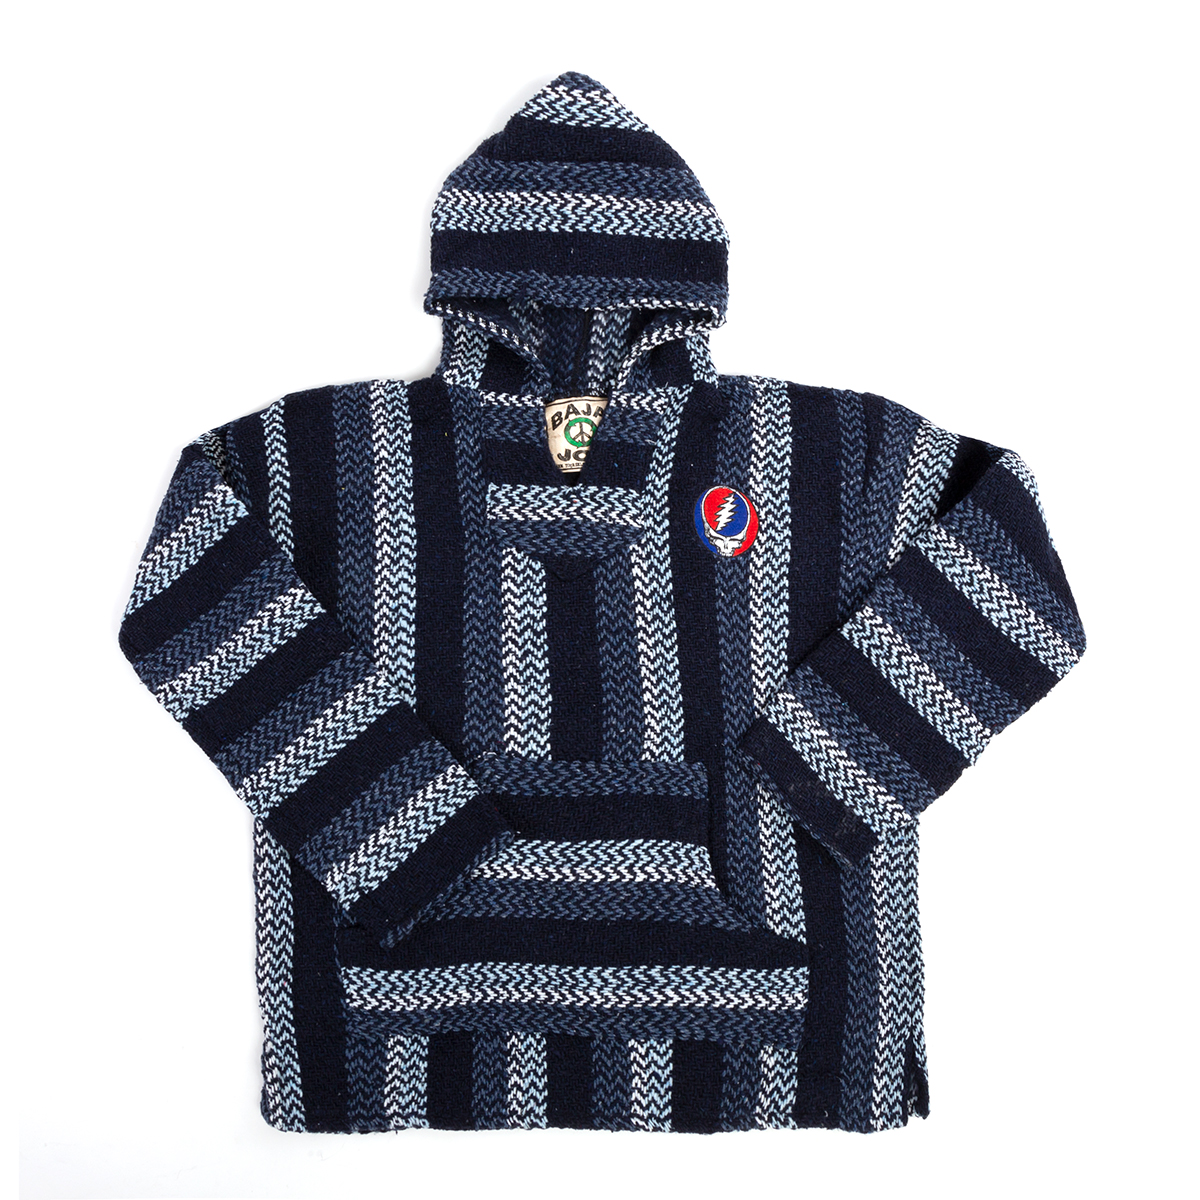 Steal Your Face Baja Pullover Hoodie